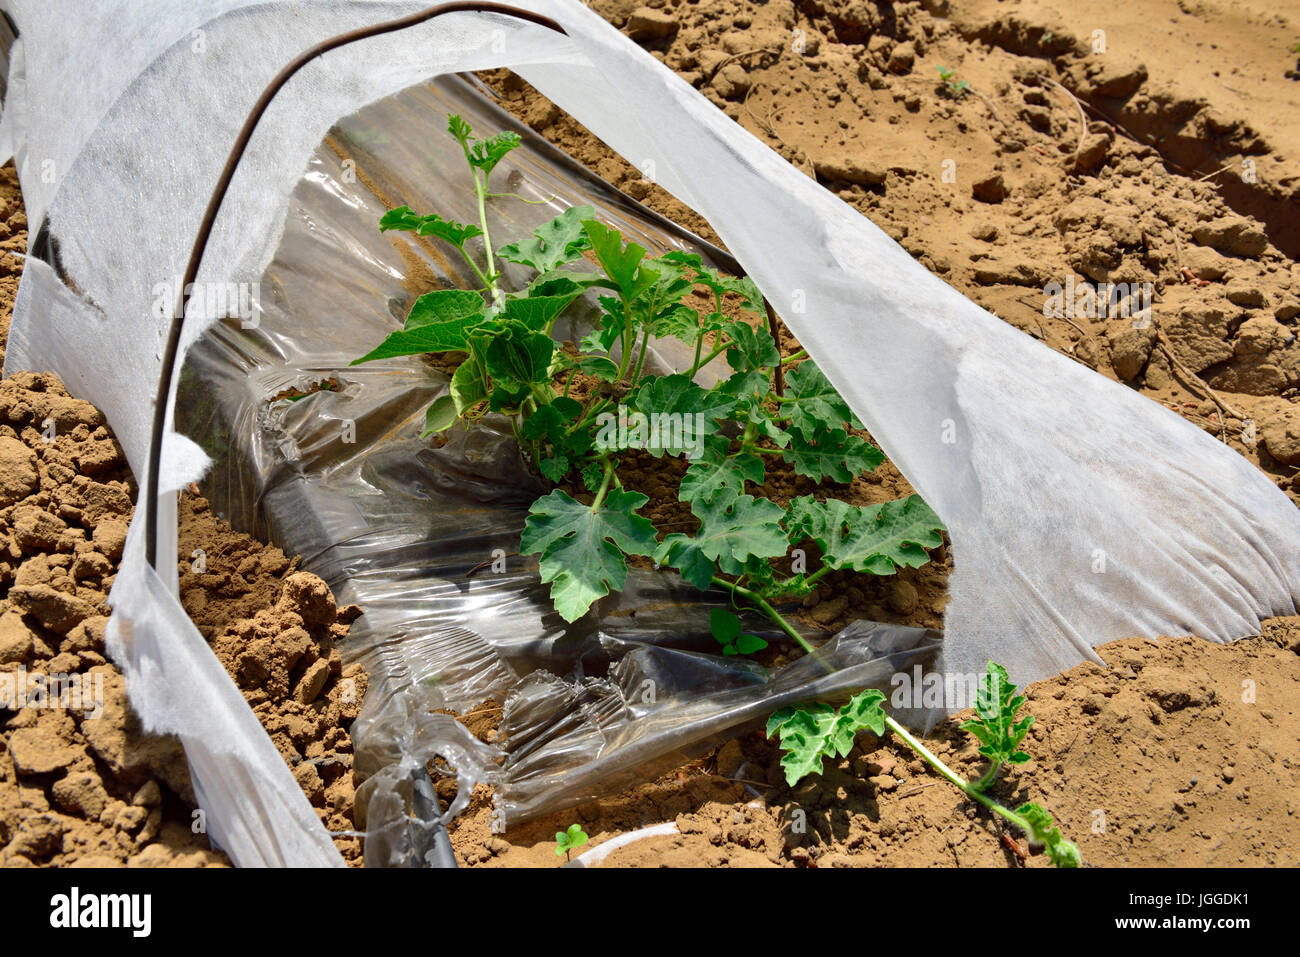 Close up of commercial agricultural horticultural fleece and plastic ground cover cloche for water conservation - Stock Image